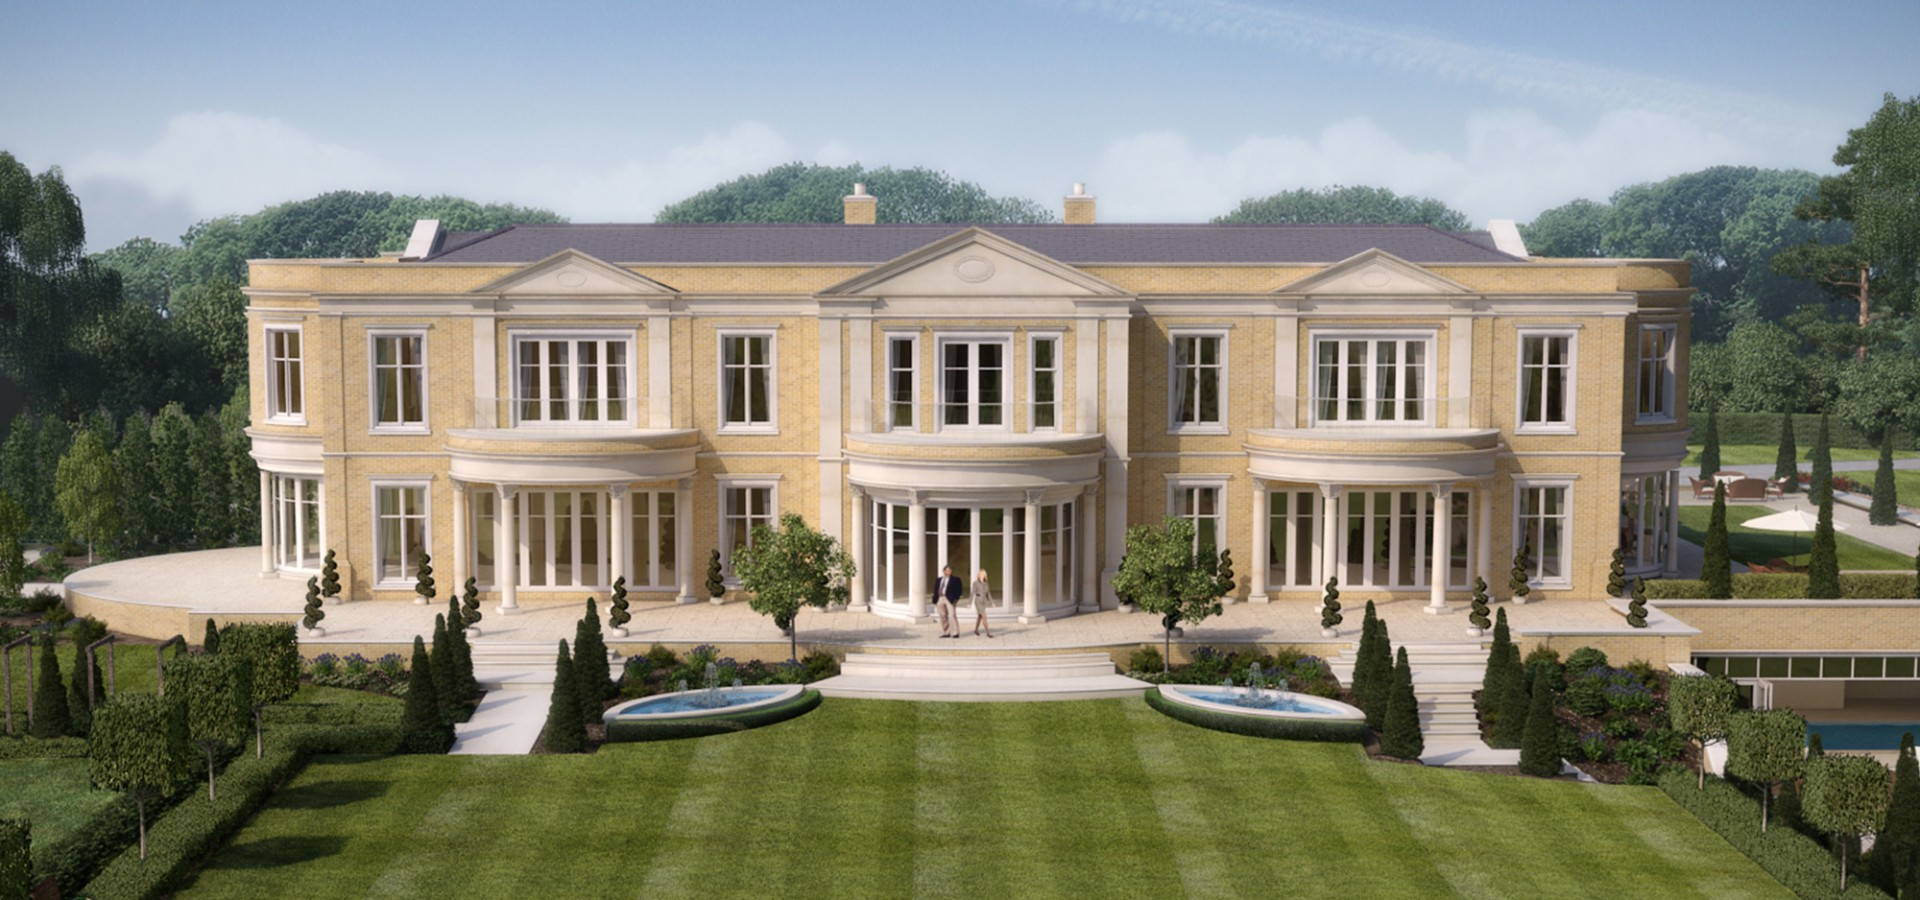 8 Bed Bespoke Luxury Home larks Hill Ascot | Sunningdale ... Luxury House Plans Sq Ft on french country house plans, small cabin floor plans, apartment floor plans, 12000 square foot house plans, 15000 sq ft commercial, 300 square foot apartment plans, 1500 sq ft floor plans, 15000 sq ft office, 650 square foot house plans, 15000 sq ft retail, 400 square foot apartment plans, 18000 square foot house plans, 400 ft studio plans, over 5000 sq ft home plans, 400 square foot cottage plans, minecraft mansion floor plans, 15000 sq ft building, 25000 sq ft home plans, new england saltbox house plans,